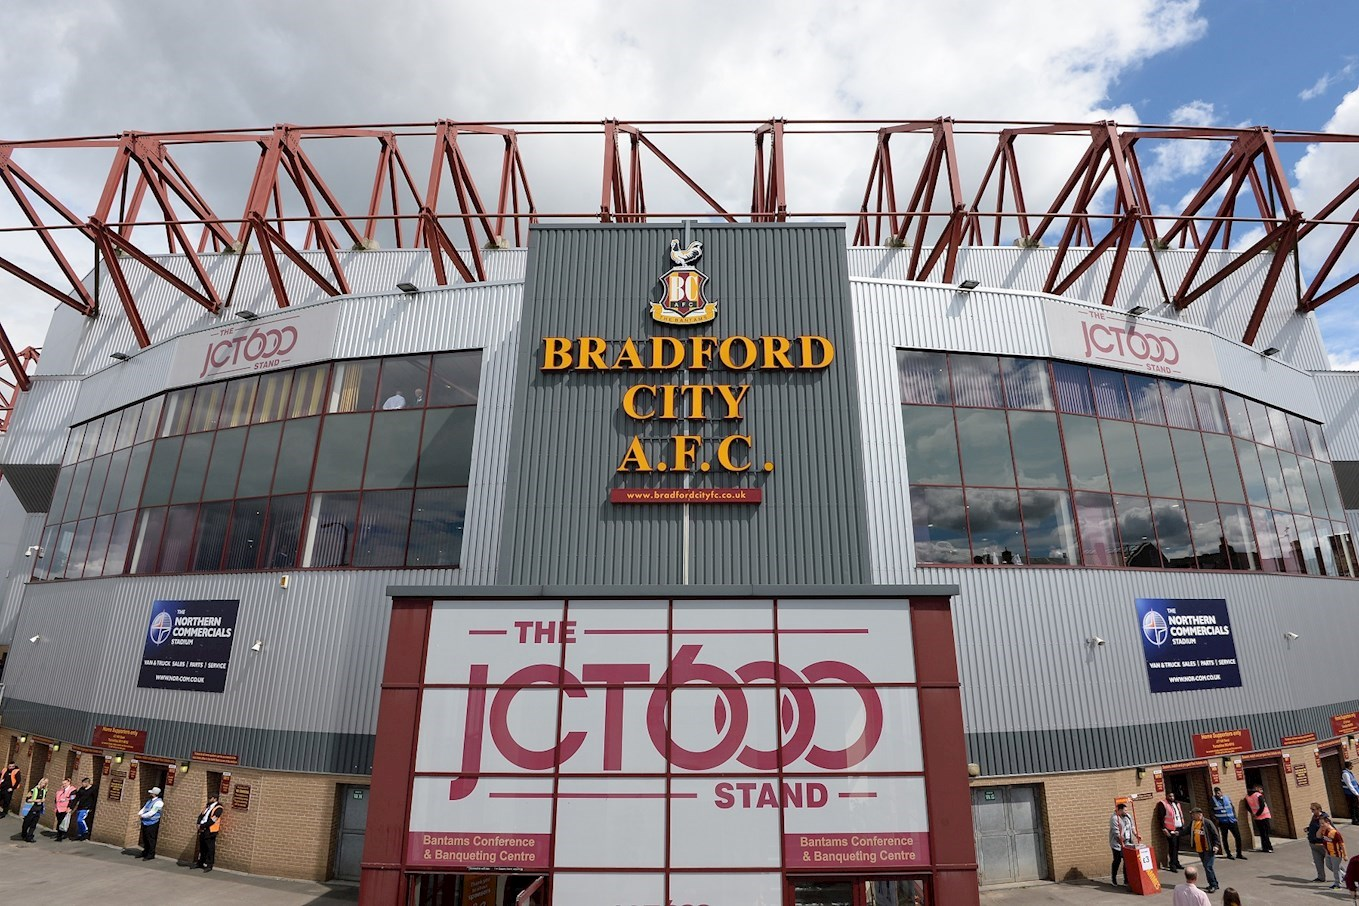 TICKET OFFICE: OPEN HOURS EXTENDED - News - Bradford City